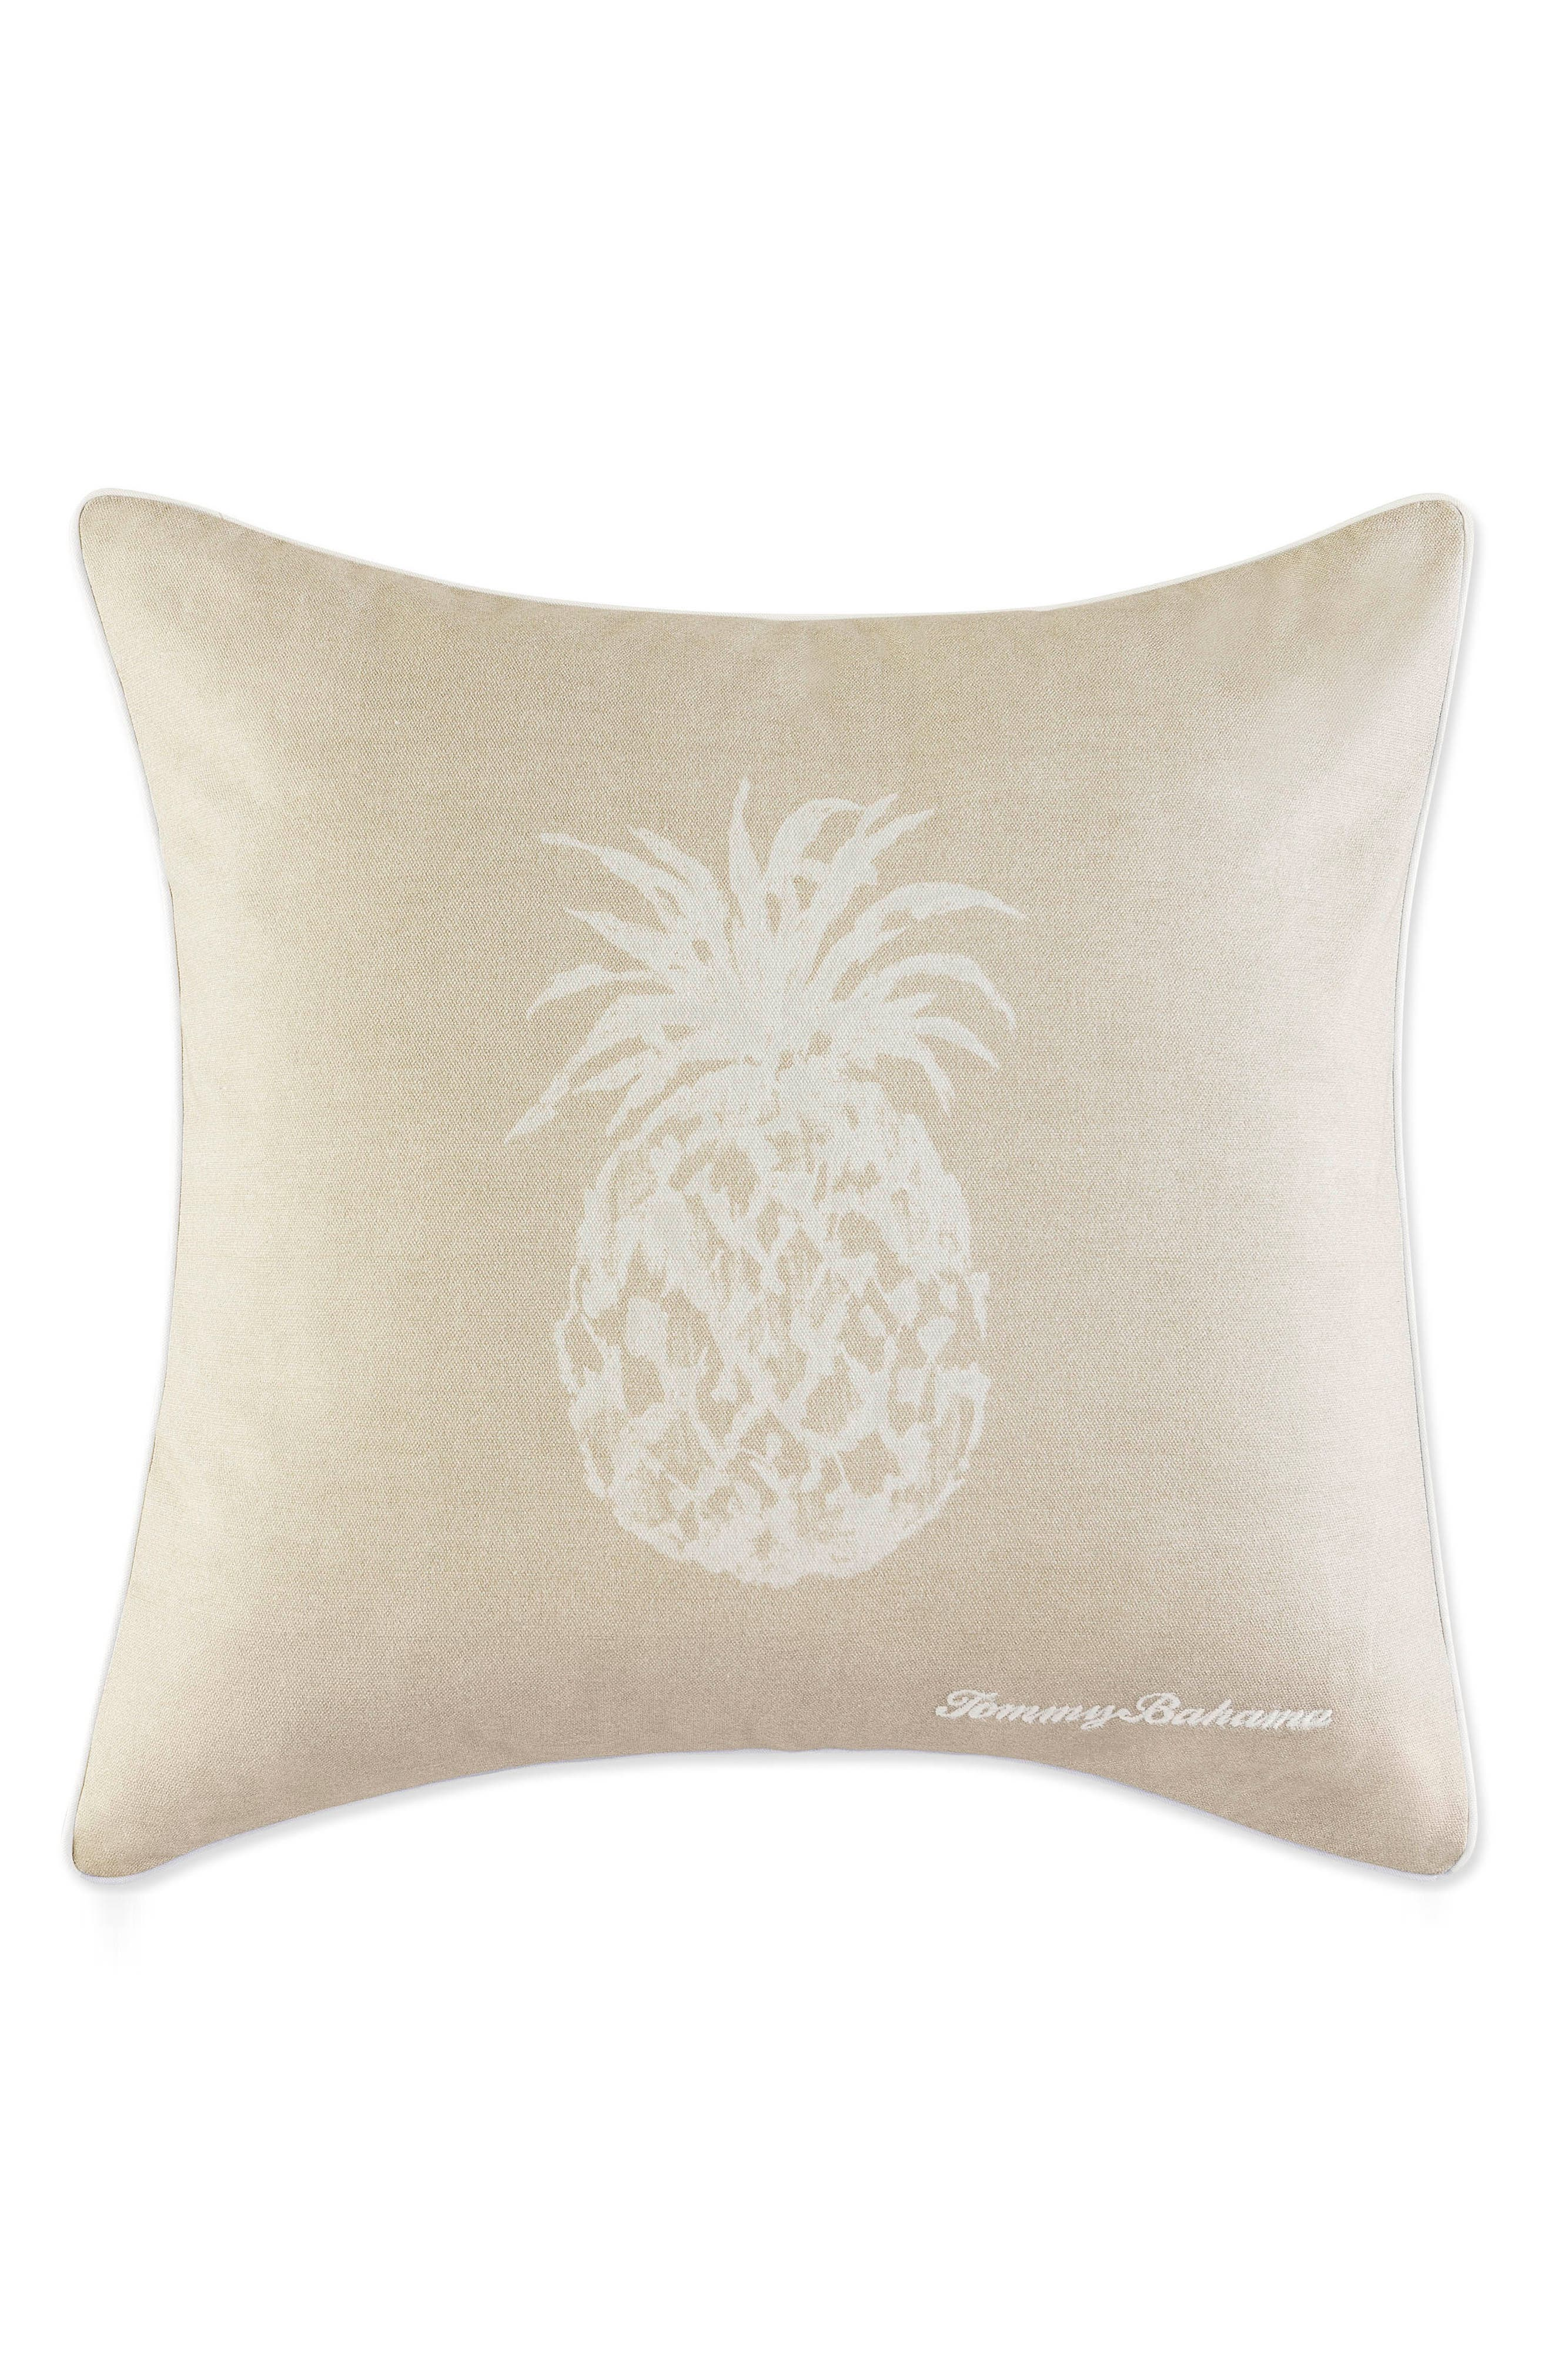 Pineapple Accent Pillow,                             Main thumbnail 1, color,                             SAND